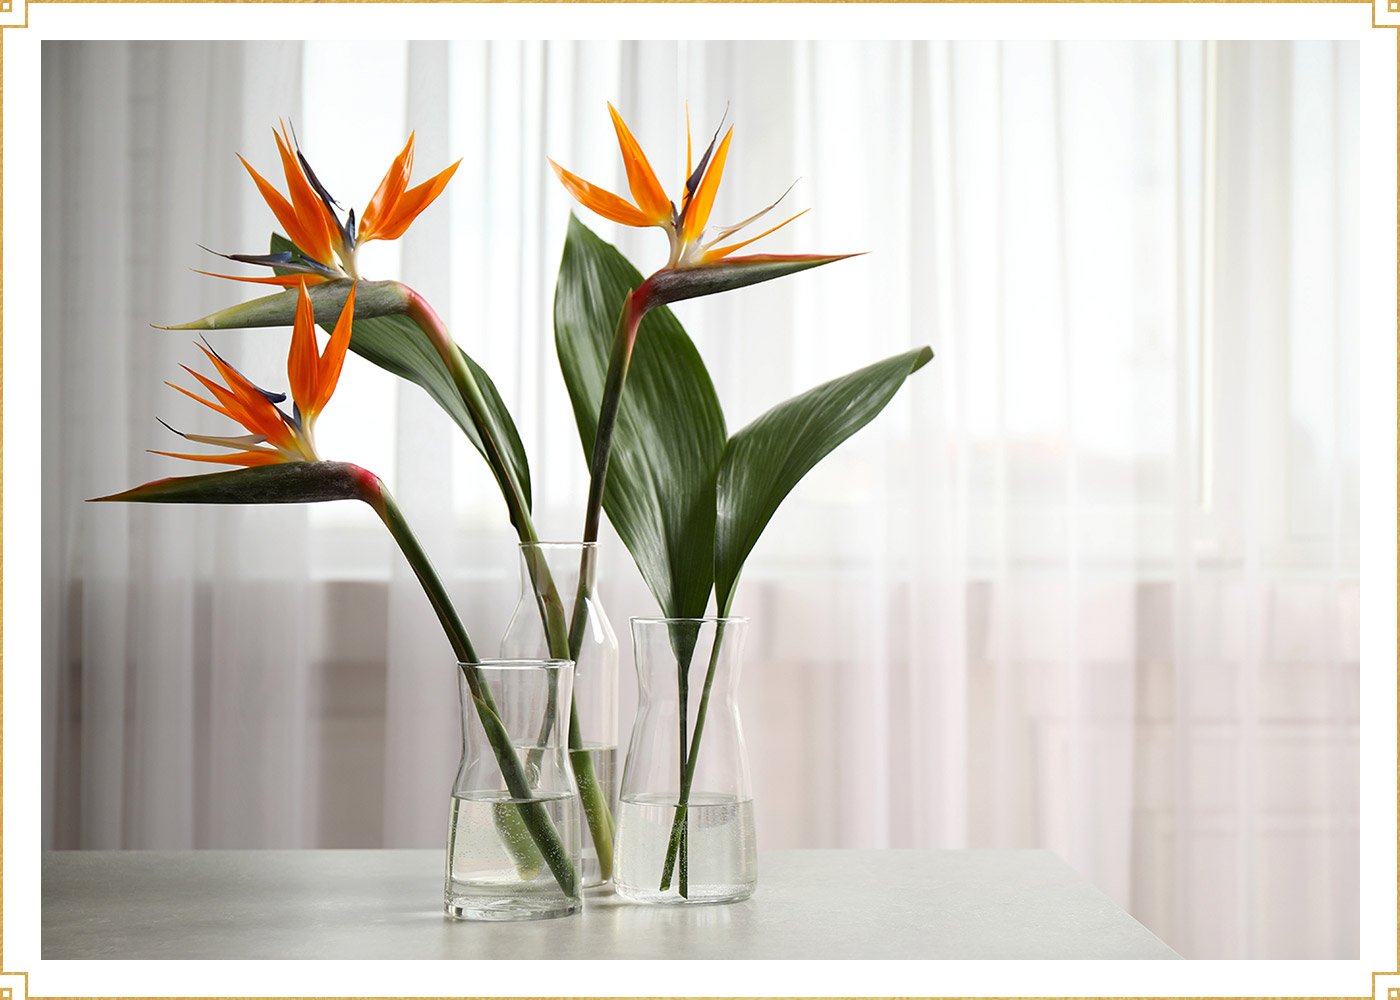 vase of birds of paradise flowers